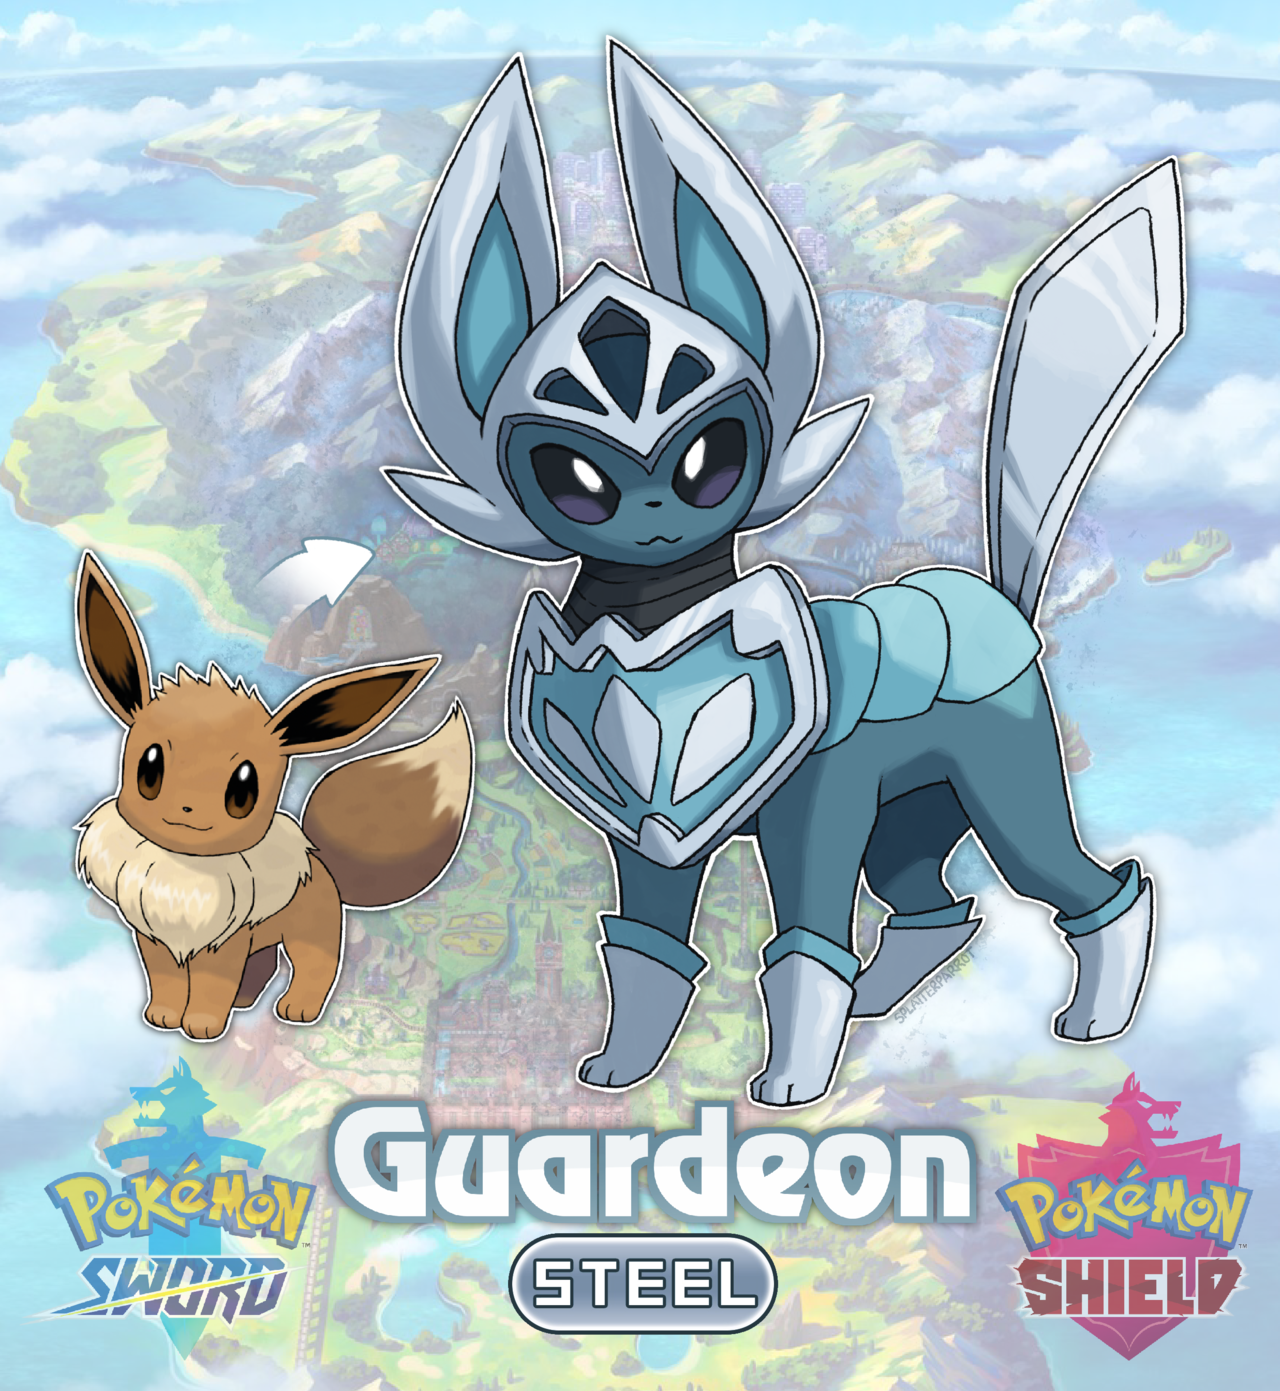 Splatterparrot Introducing The New Armour Pokemon Guardeon Im Really Hoping For A New Eeveelution I Pokemon Eeveelutions Pokemon Pokemon Eevee Evolutions